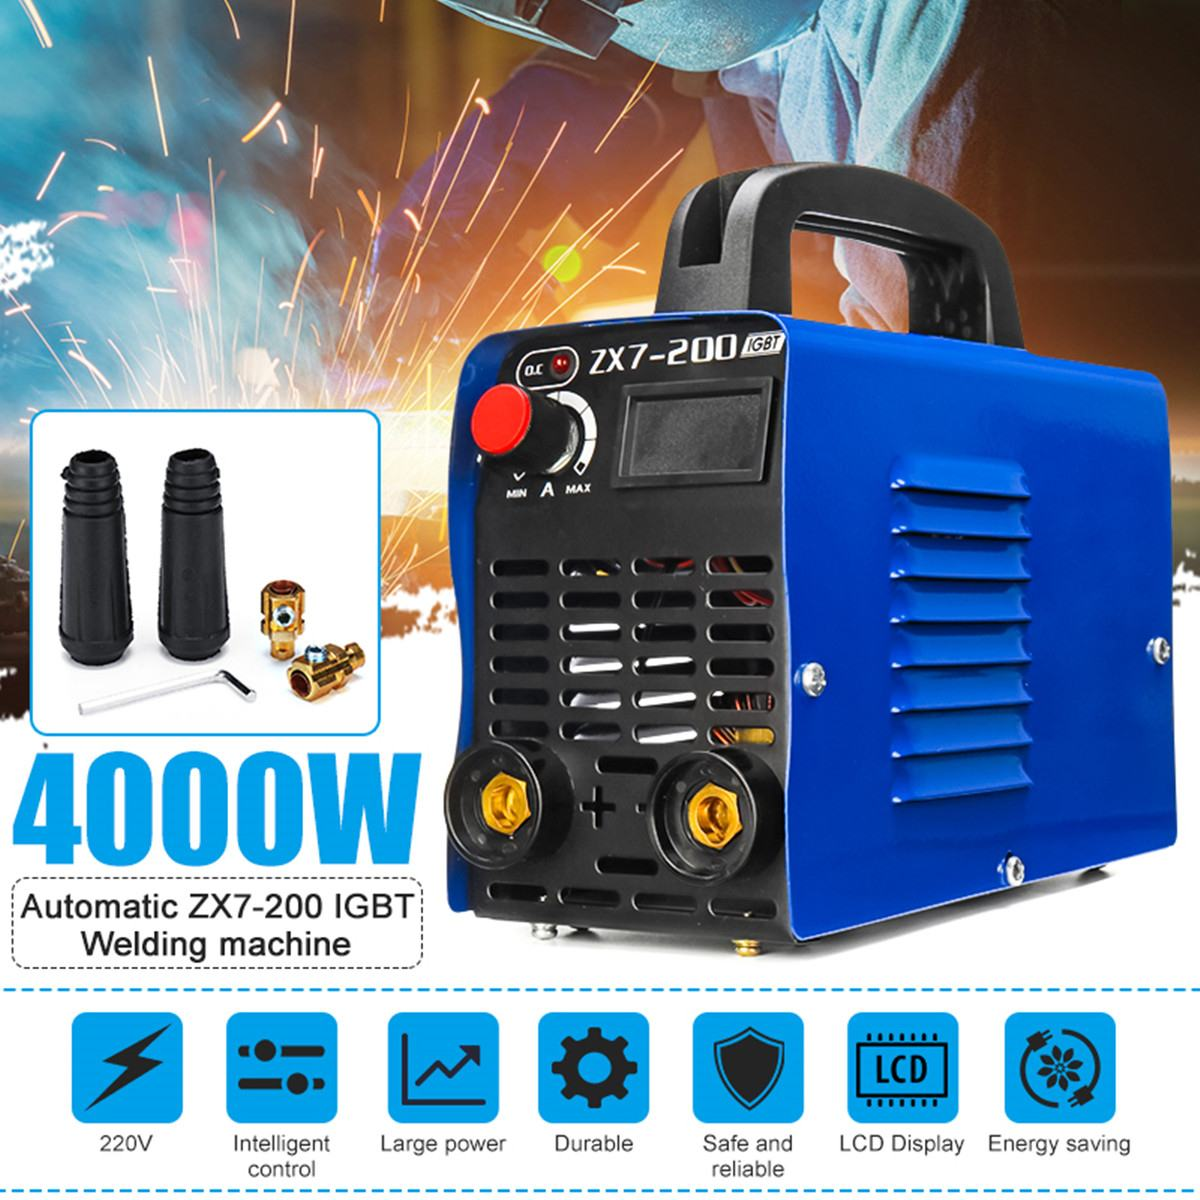 4000W 20A-200A Adjustable Portable Mini Handheld IGBT Inverter Arc Welding Machine Digital Electric-Welder Inverter Machine Tool